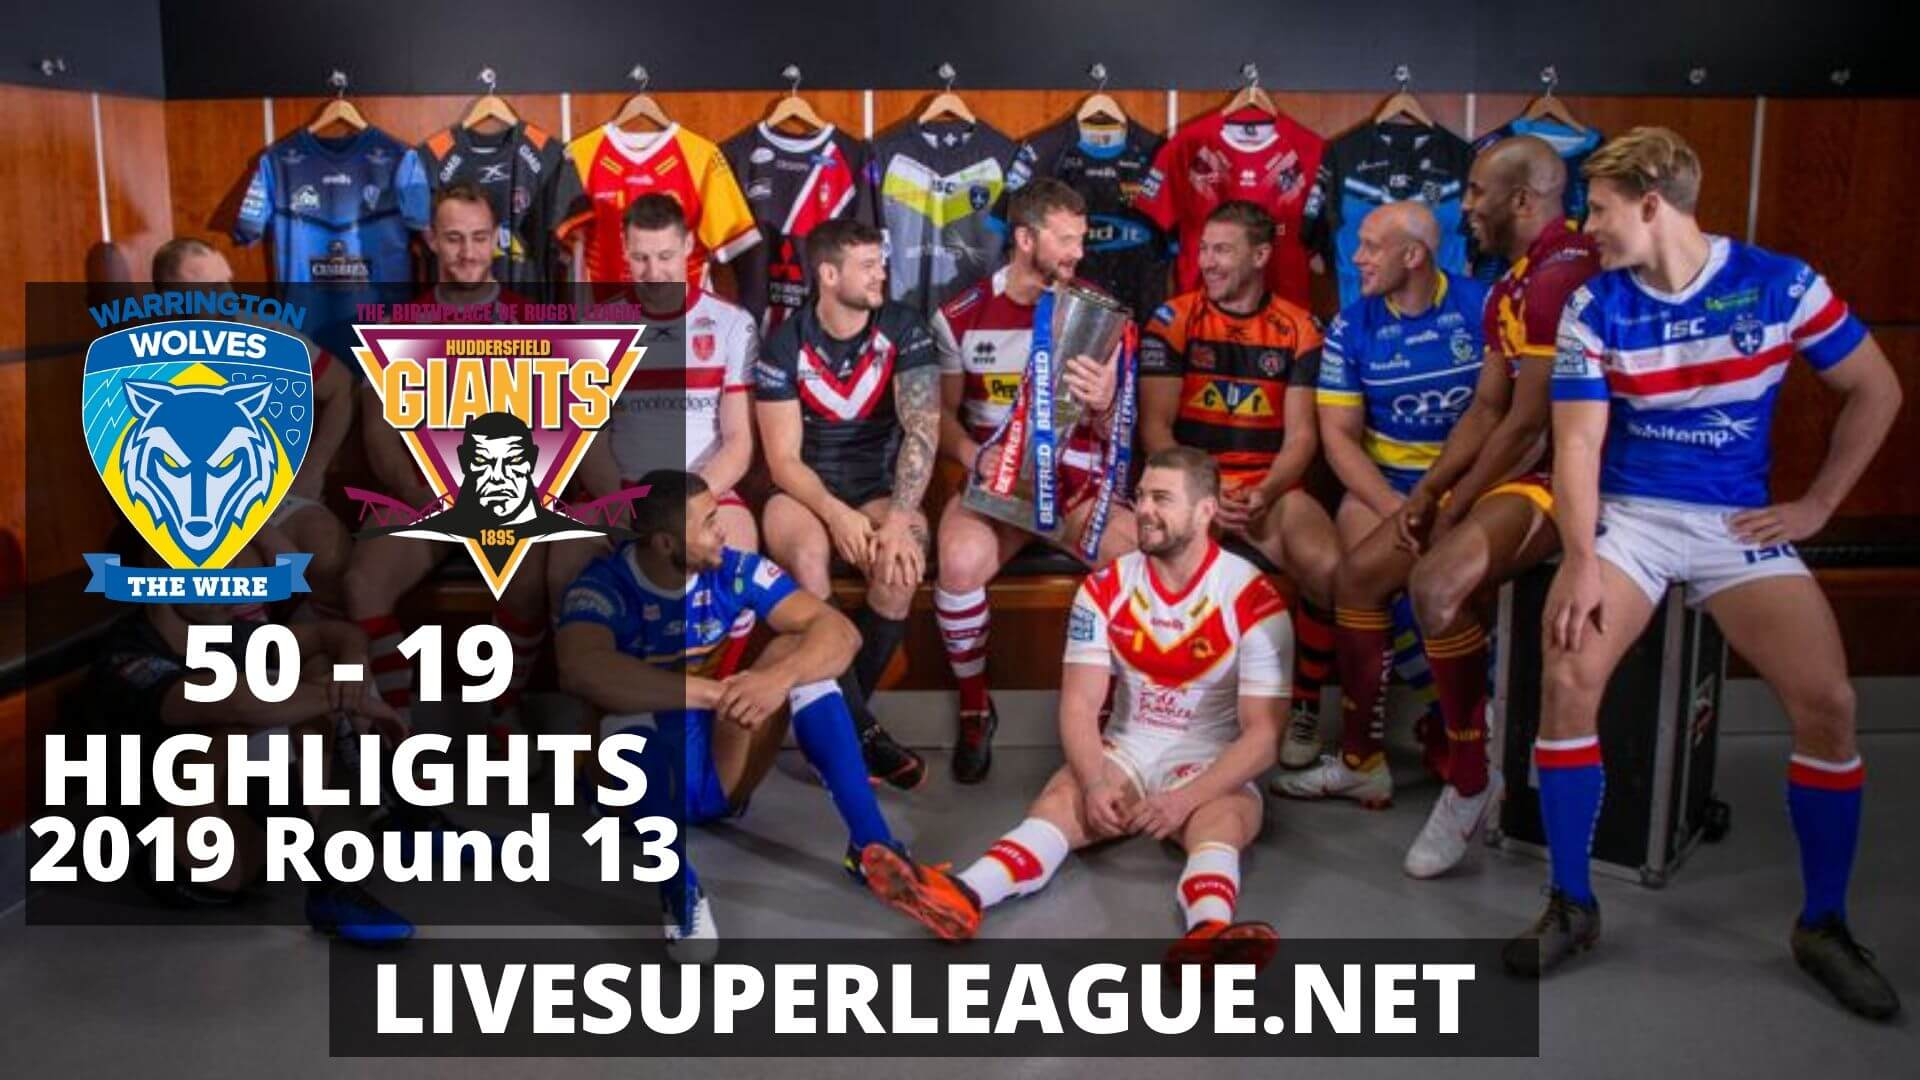 Warrington Wolves Vs Huddersfield Giants Highlights 2019 Round 13